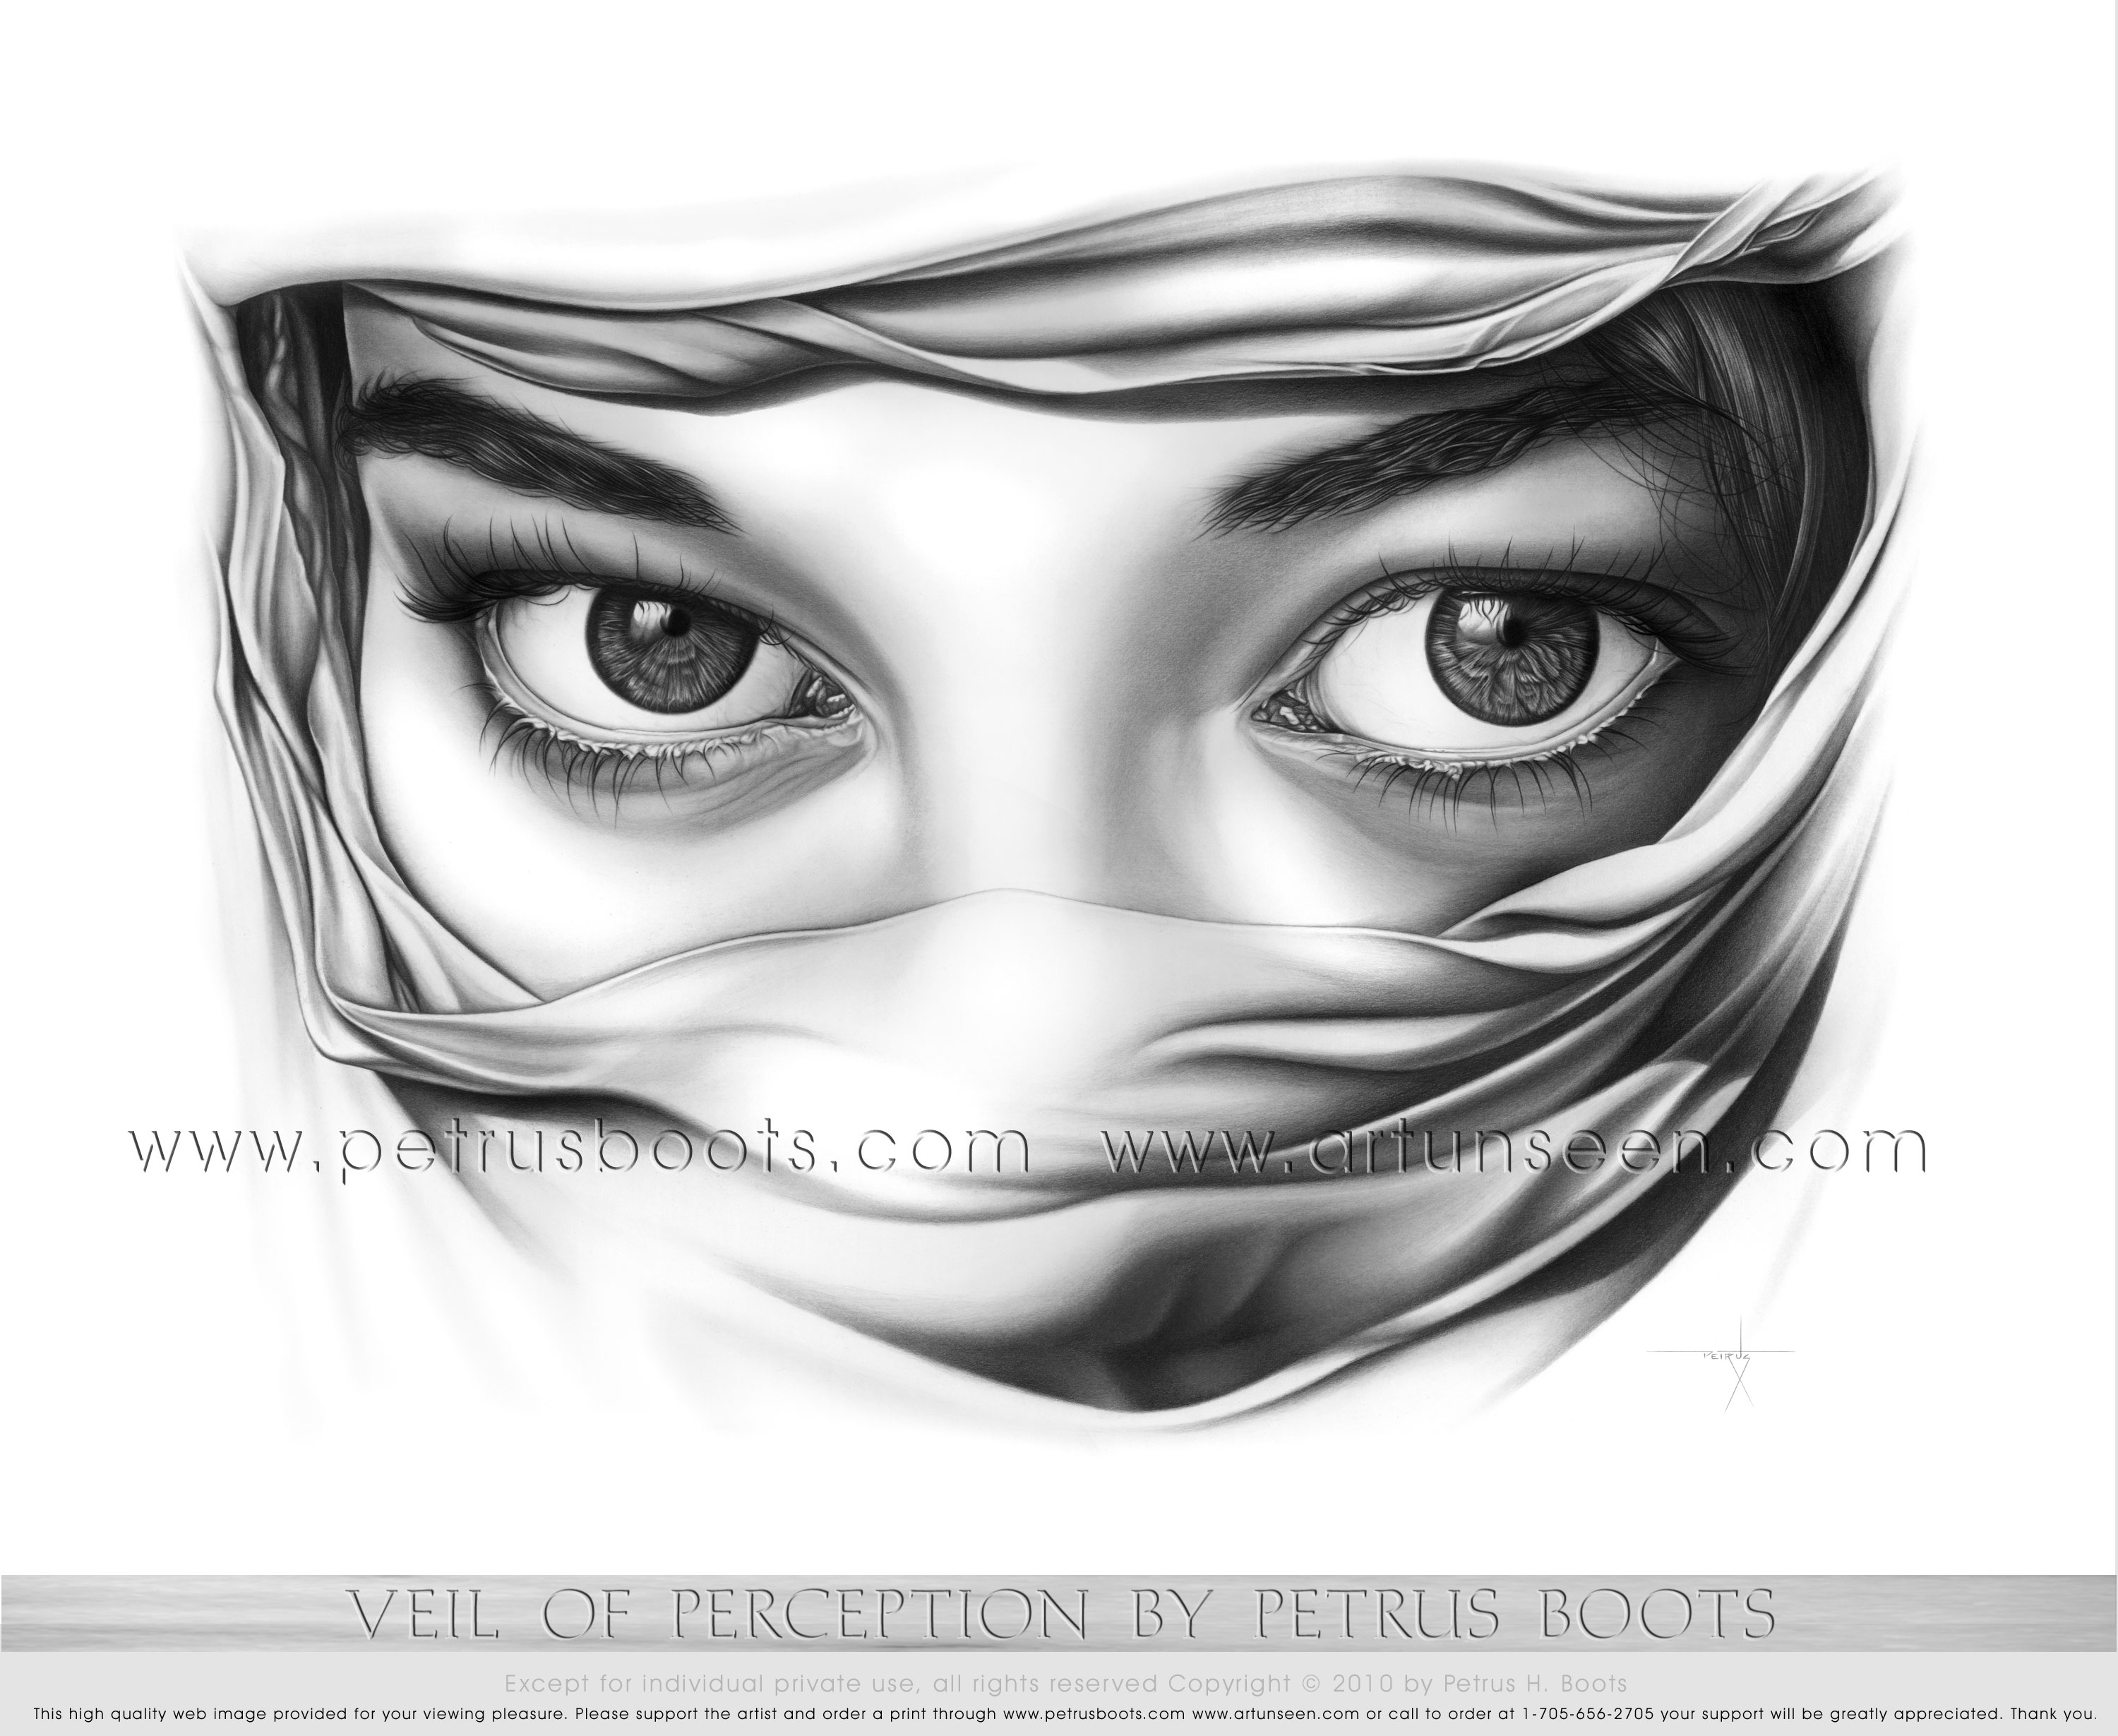 The art of petrus boots veil of perception graphite pencil pencil artwork pencil drawings illustrations